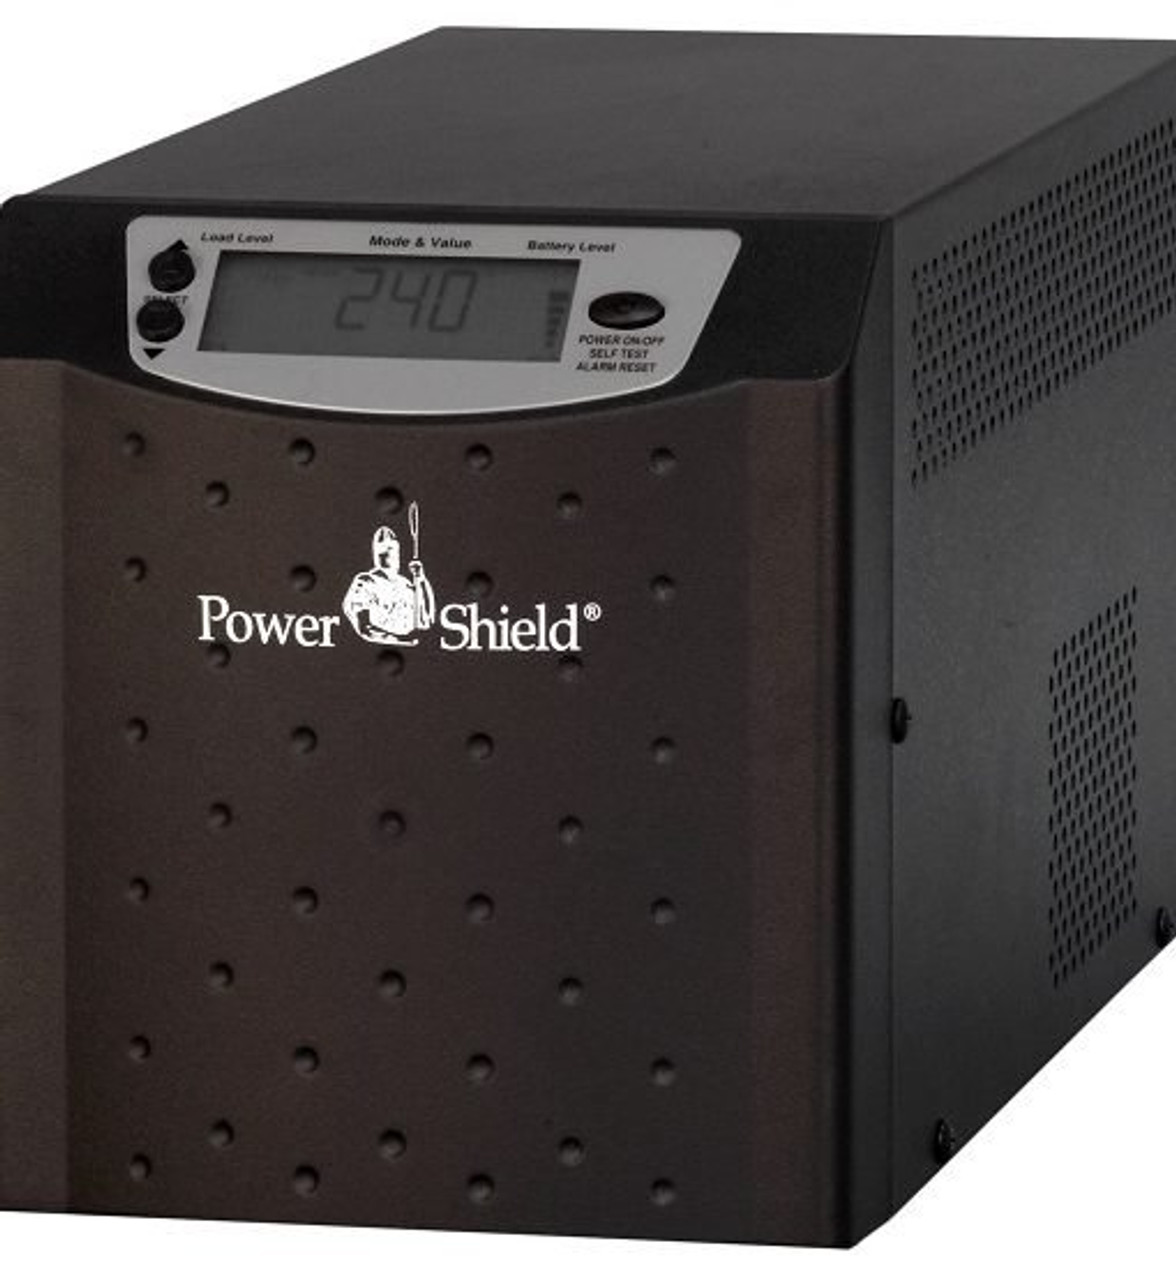 Product image for Powershield Commander 2000va Line Interactive Tower Ups - 1400w   CX Computer Superstore